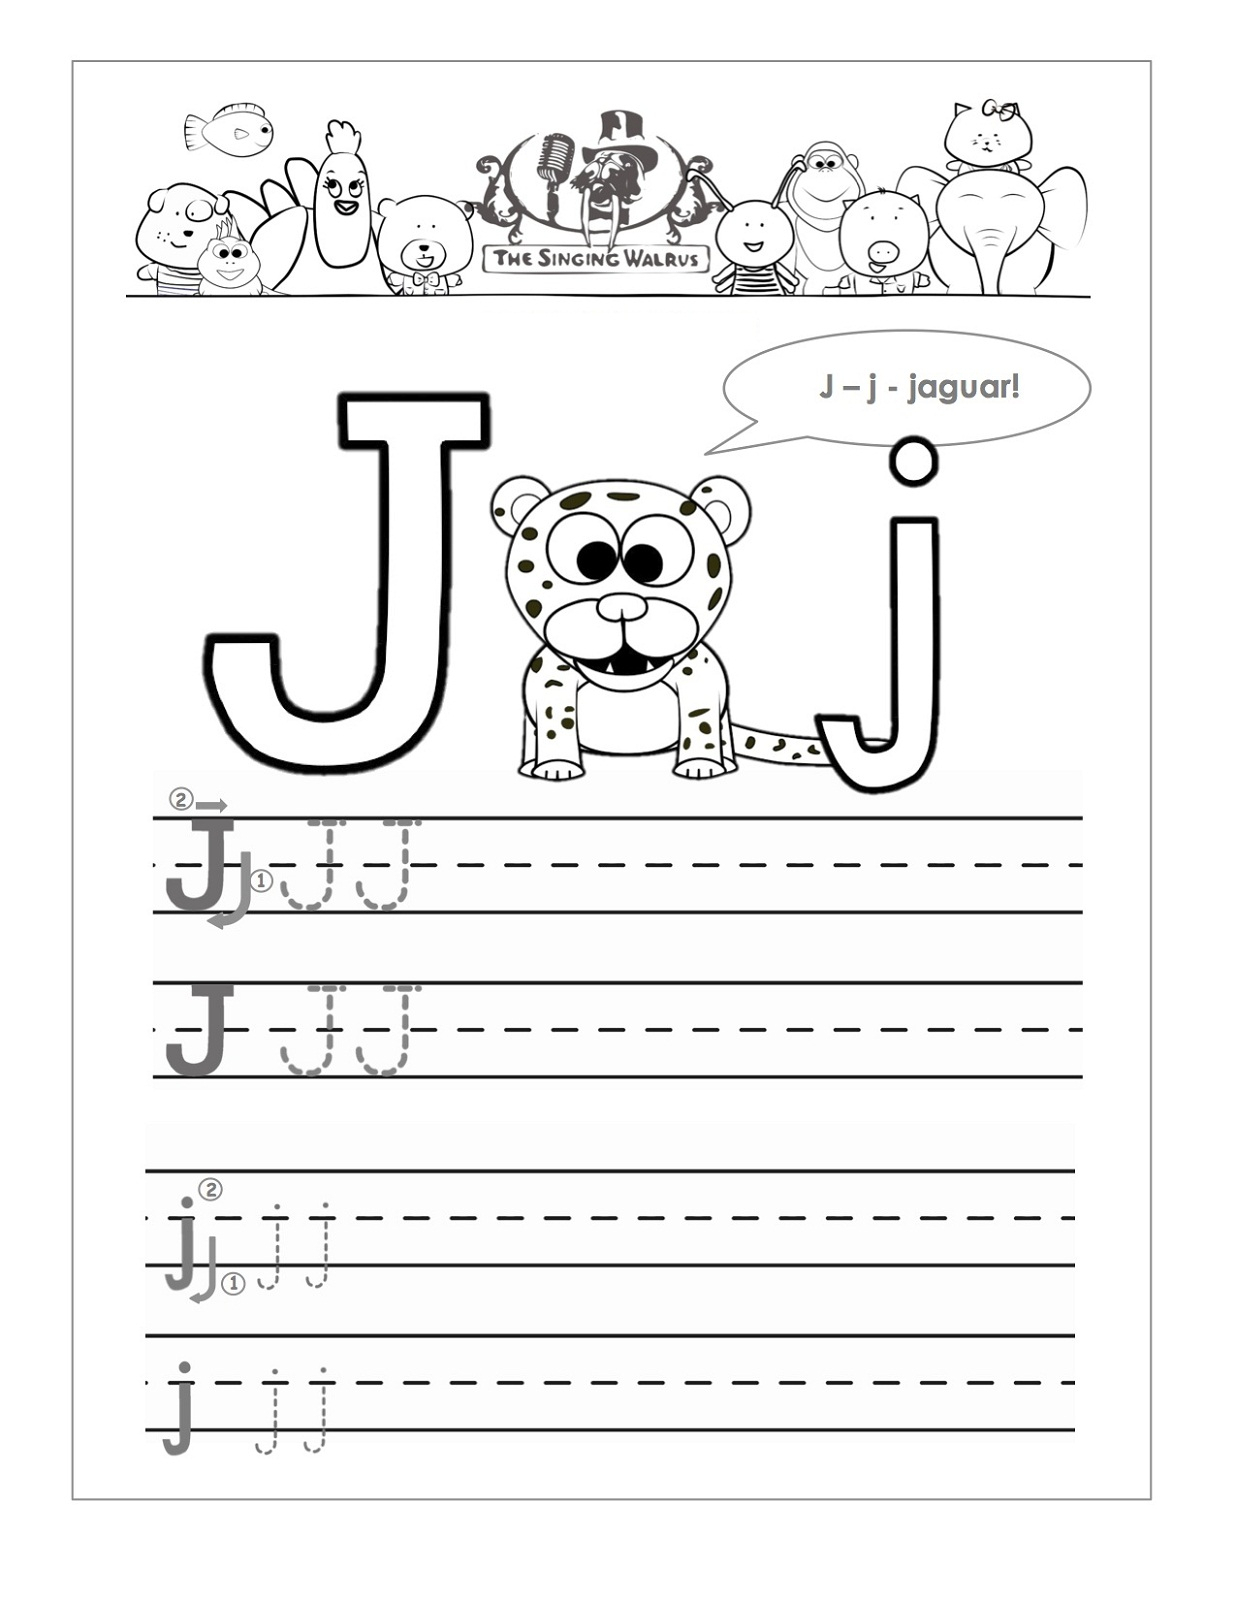 Printable Letter J Worksheets For Kindergarten | Loving for Letter J Worksheets Easy